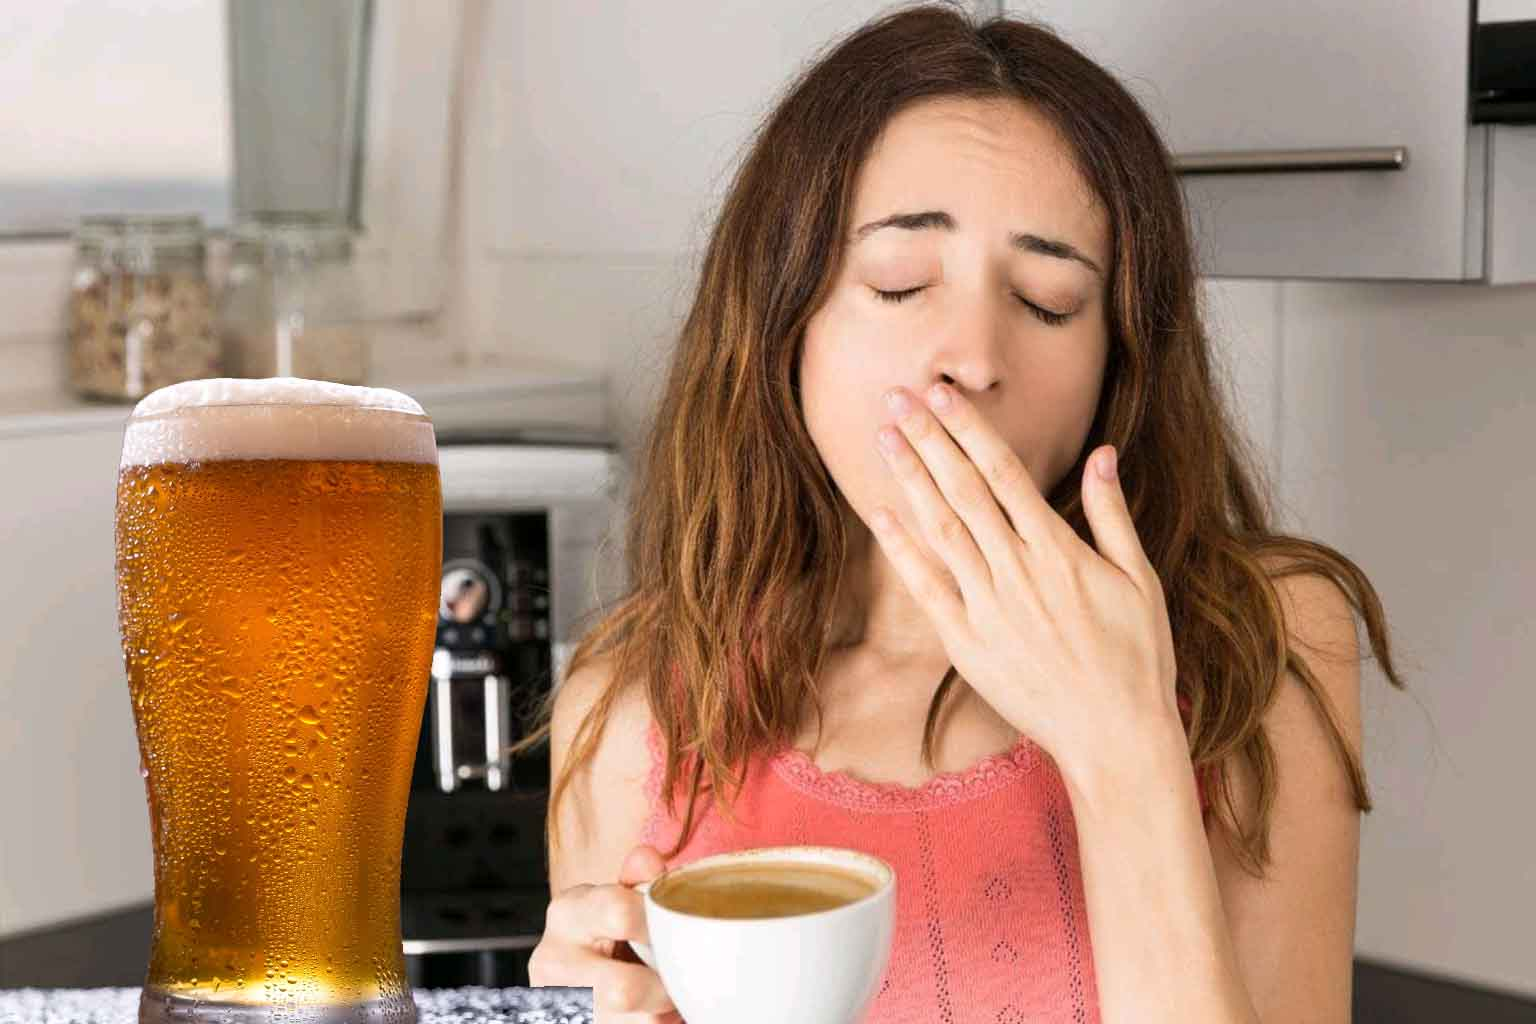 say no to beer ice tea coke or 7up on empty stomach